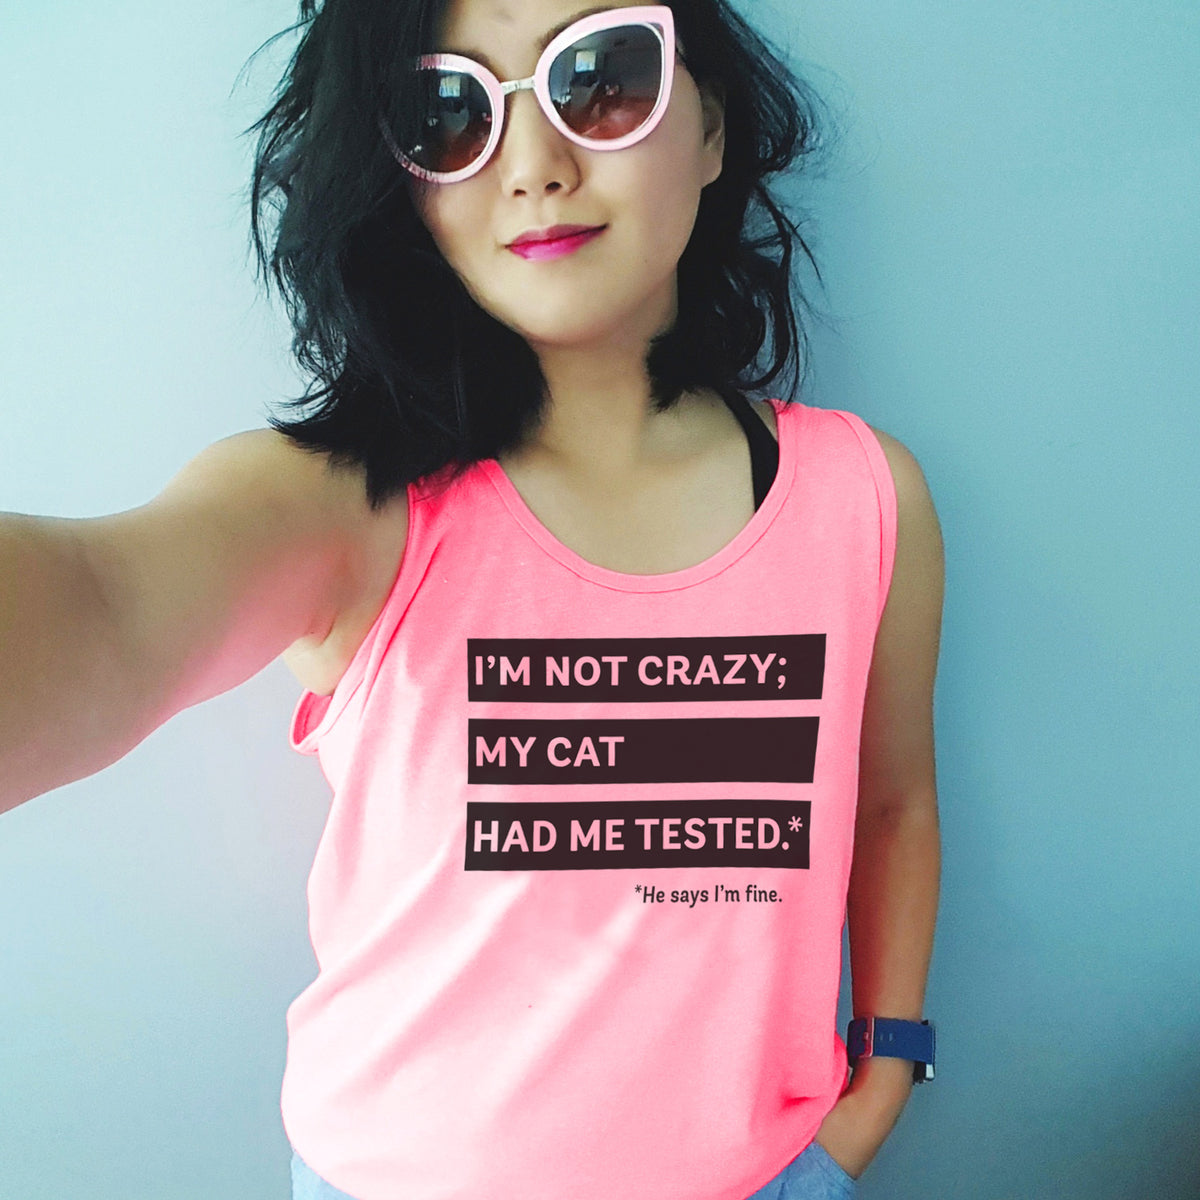 I'm Not Crazy; My Cat Had Me Tested. He Says I'm Fine. - Screen printed neon pink unisex tank top for totally normal cat people.